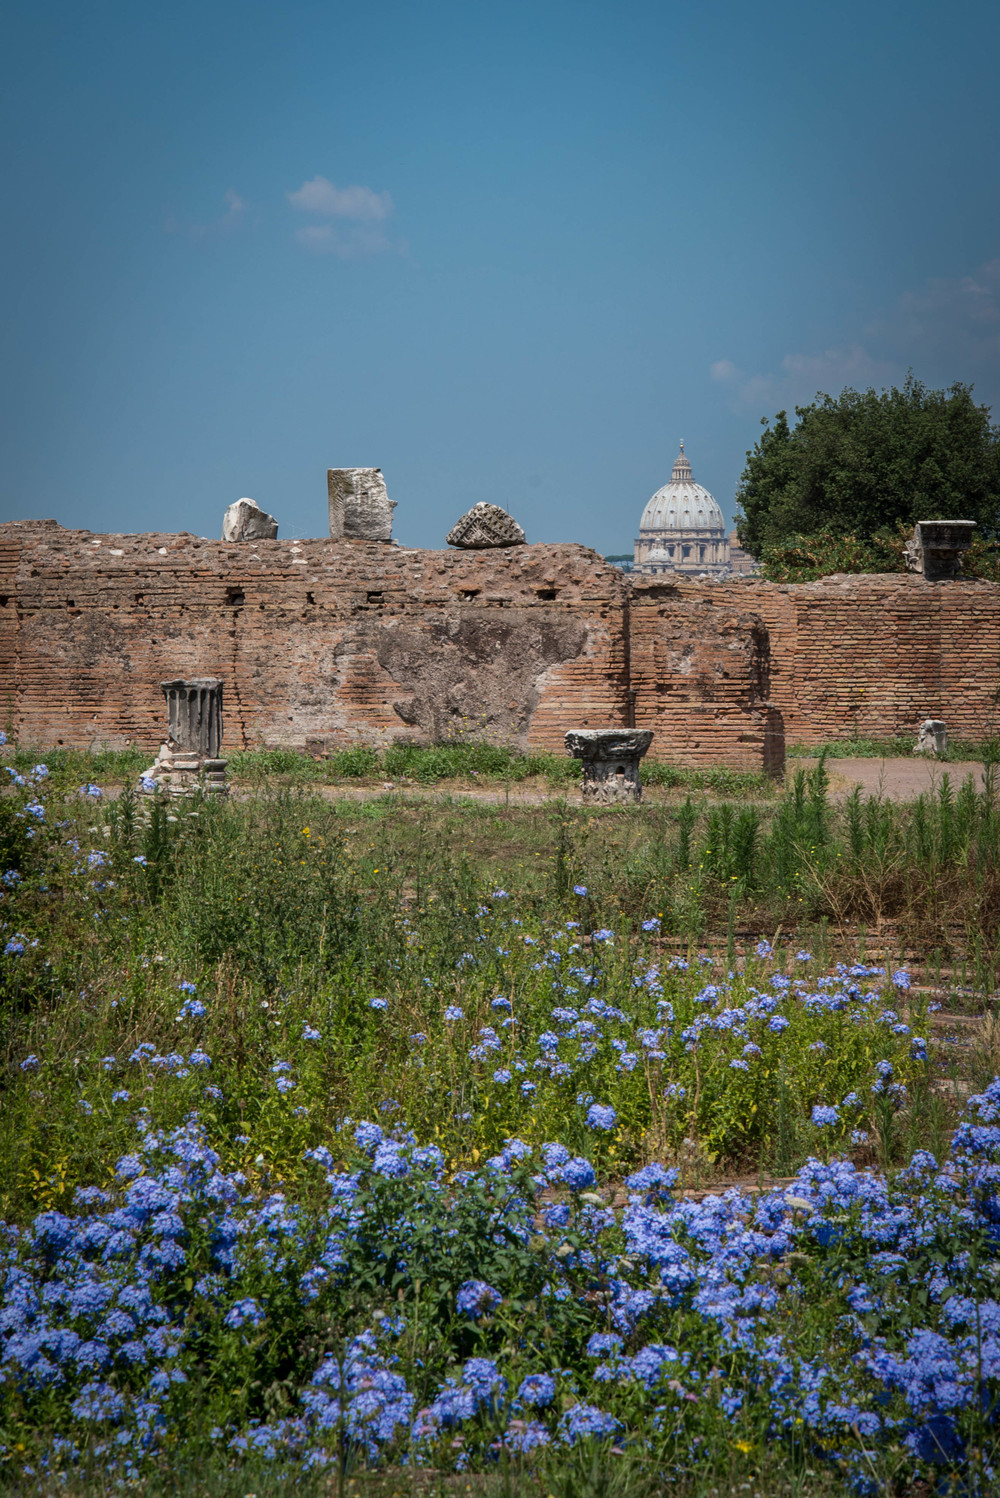 St. Peter's from Palatine Hill